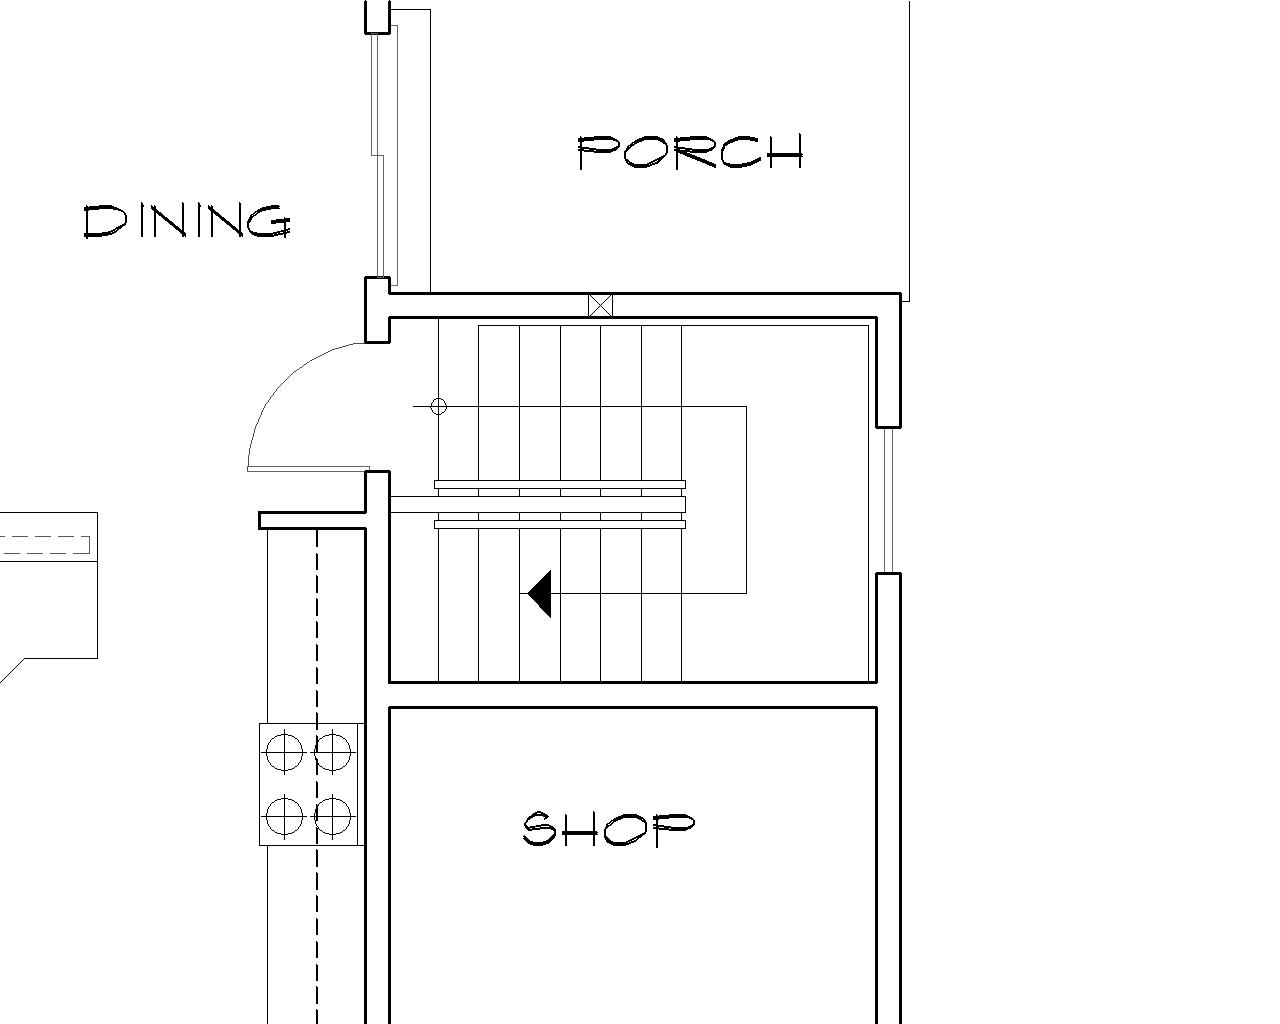 Craftsman House Plan With 2 Bedrooms And 2 5 Baths Plan 4582 | Stairs In House Plans | Residential | Upstairs Dream House | Grand Staircase | Sweeping Staircase House | Balcony